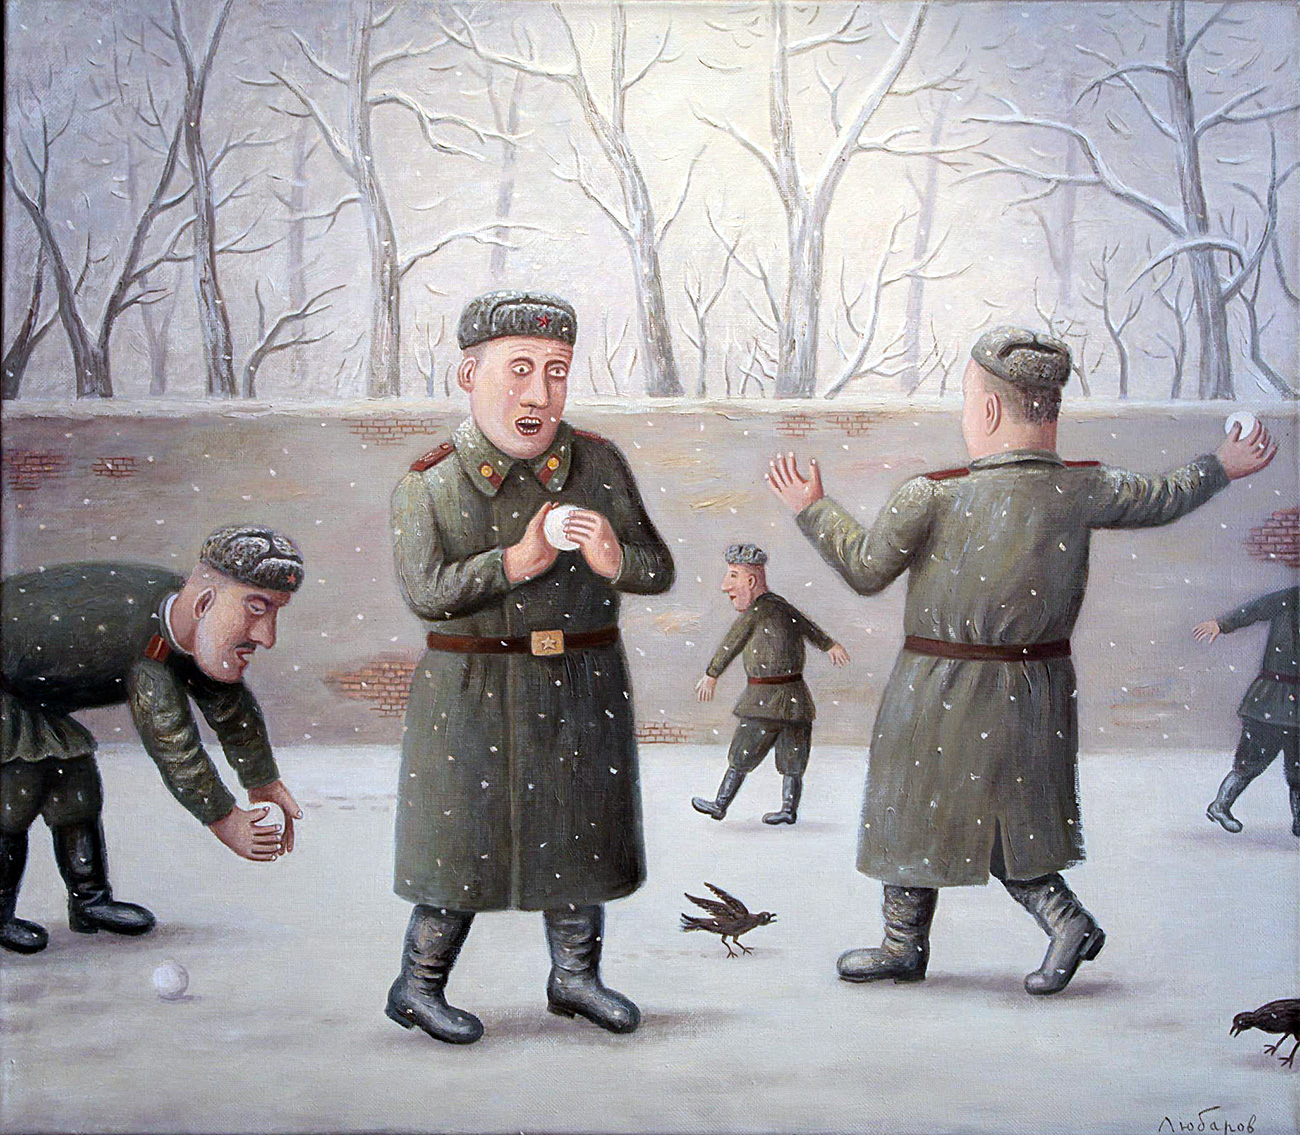 At the university Lyubarov worked as a book illustrator, a profession that was a haven for artists who were at odds with Social realism aesthetics and people who stood against Soviet censorship. Source: Vladimir Lyubarov/Genrietta Peryan/Global Look Press